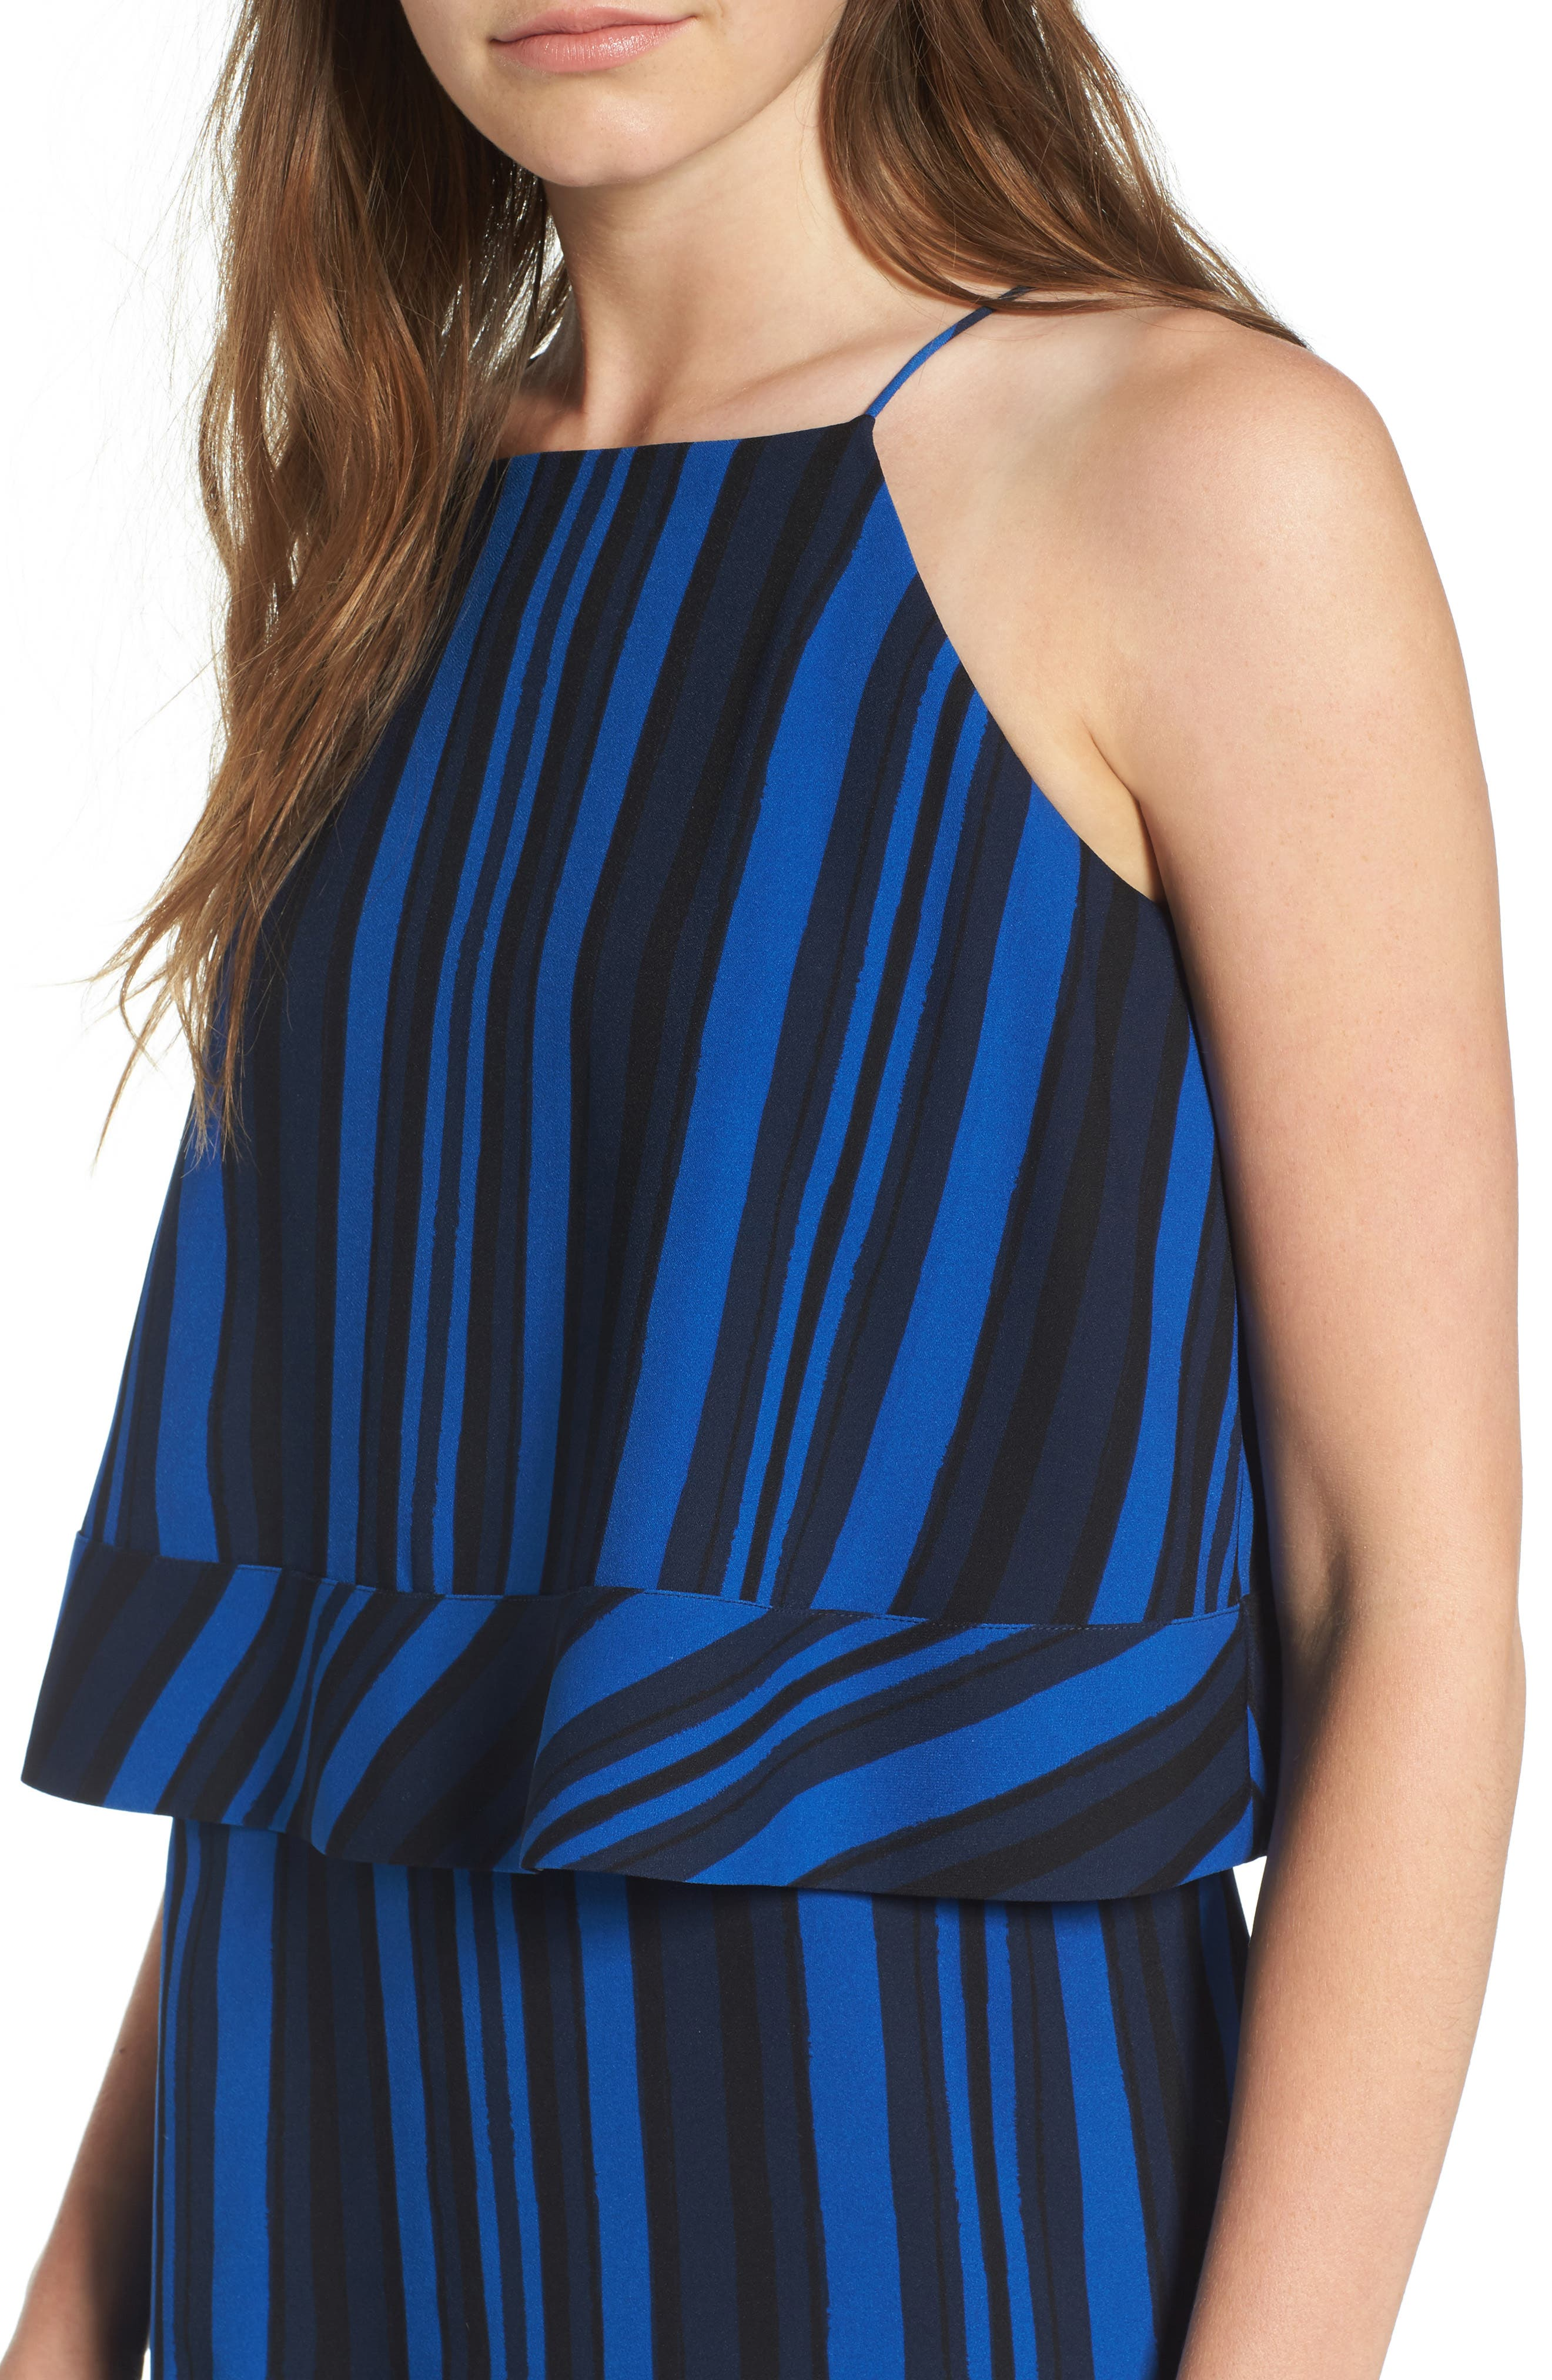 Callie Tiered Shift Dress,                             Alternate thumbnail 4, color,